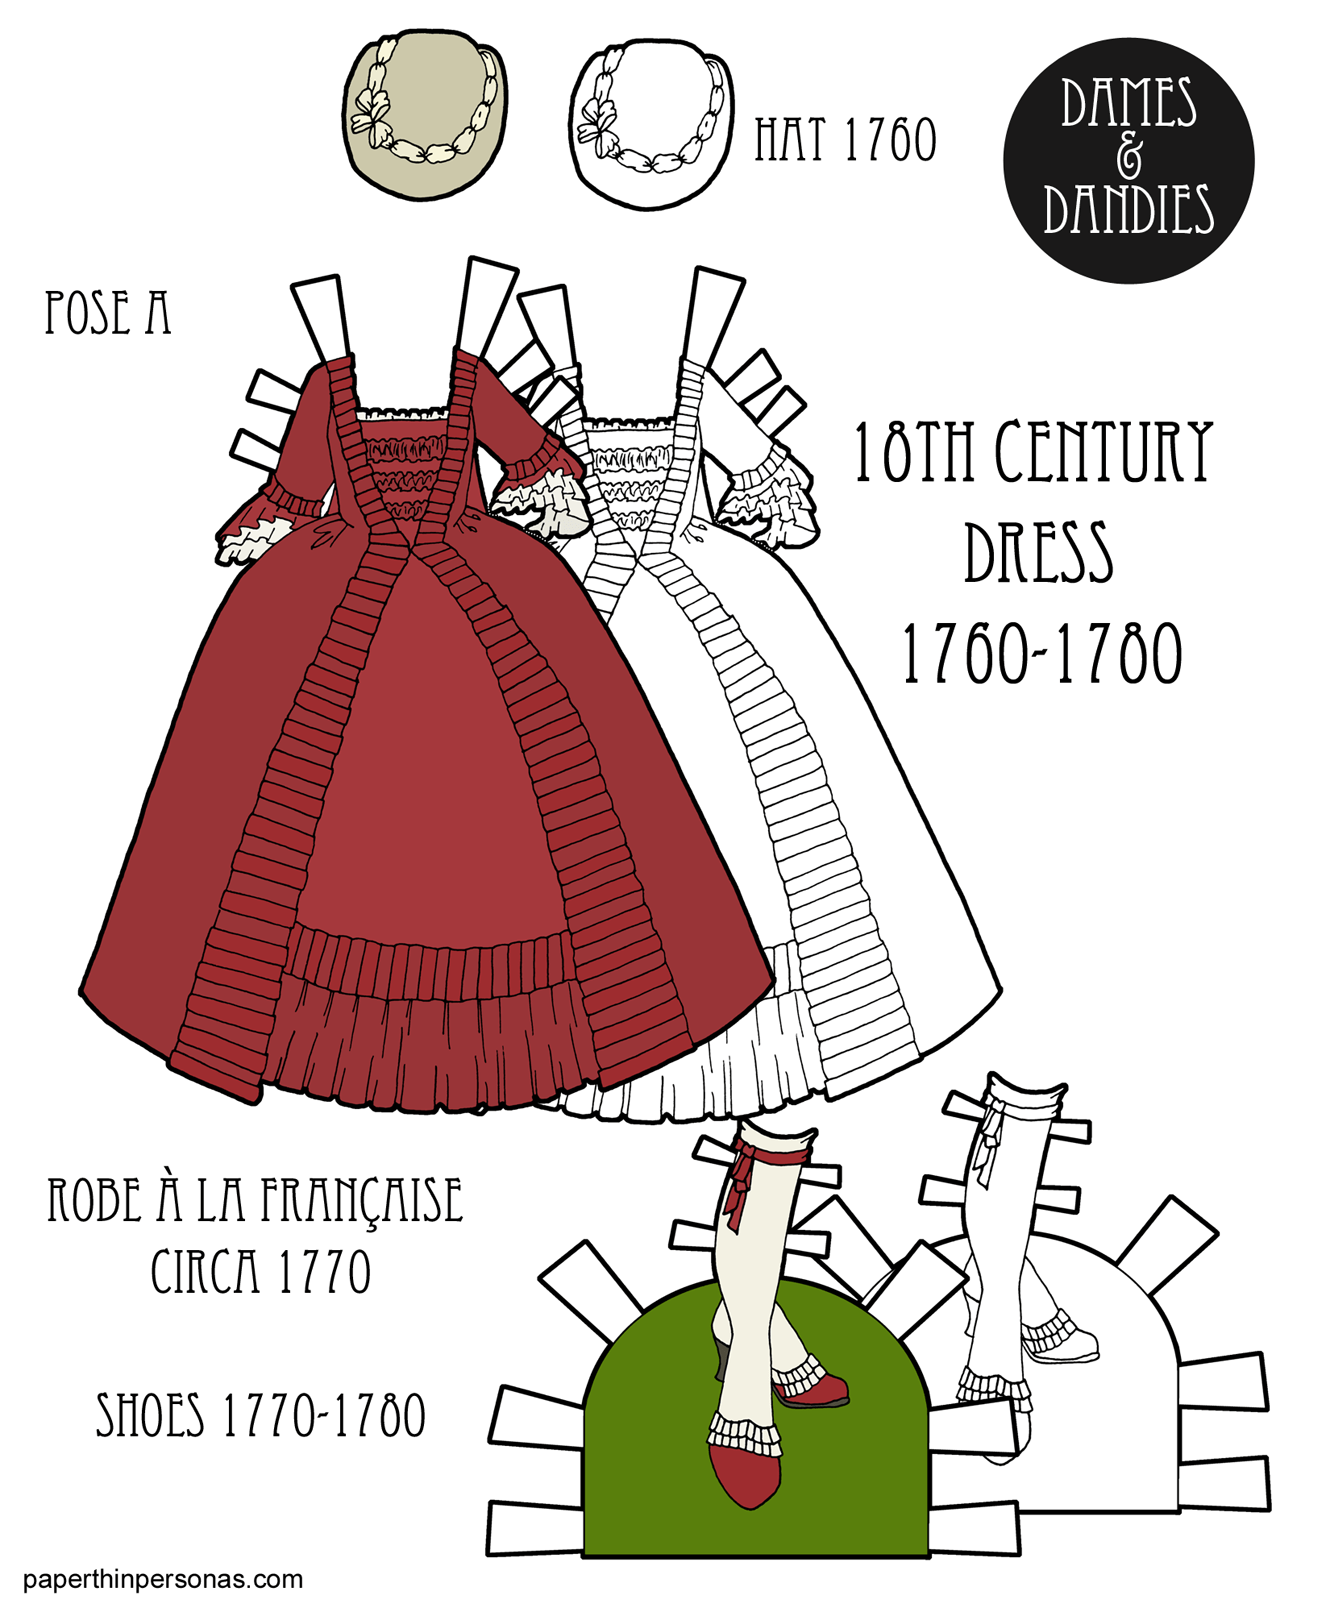 615f6174298 An 18th Century Paper Doll Dress Based on a Robe à la Française from 1770